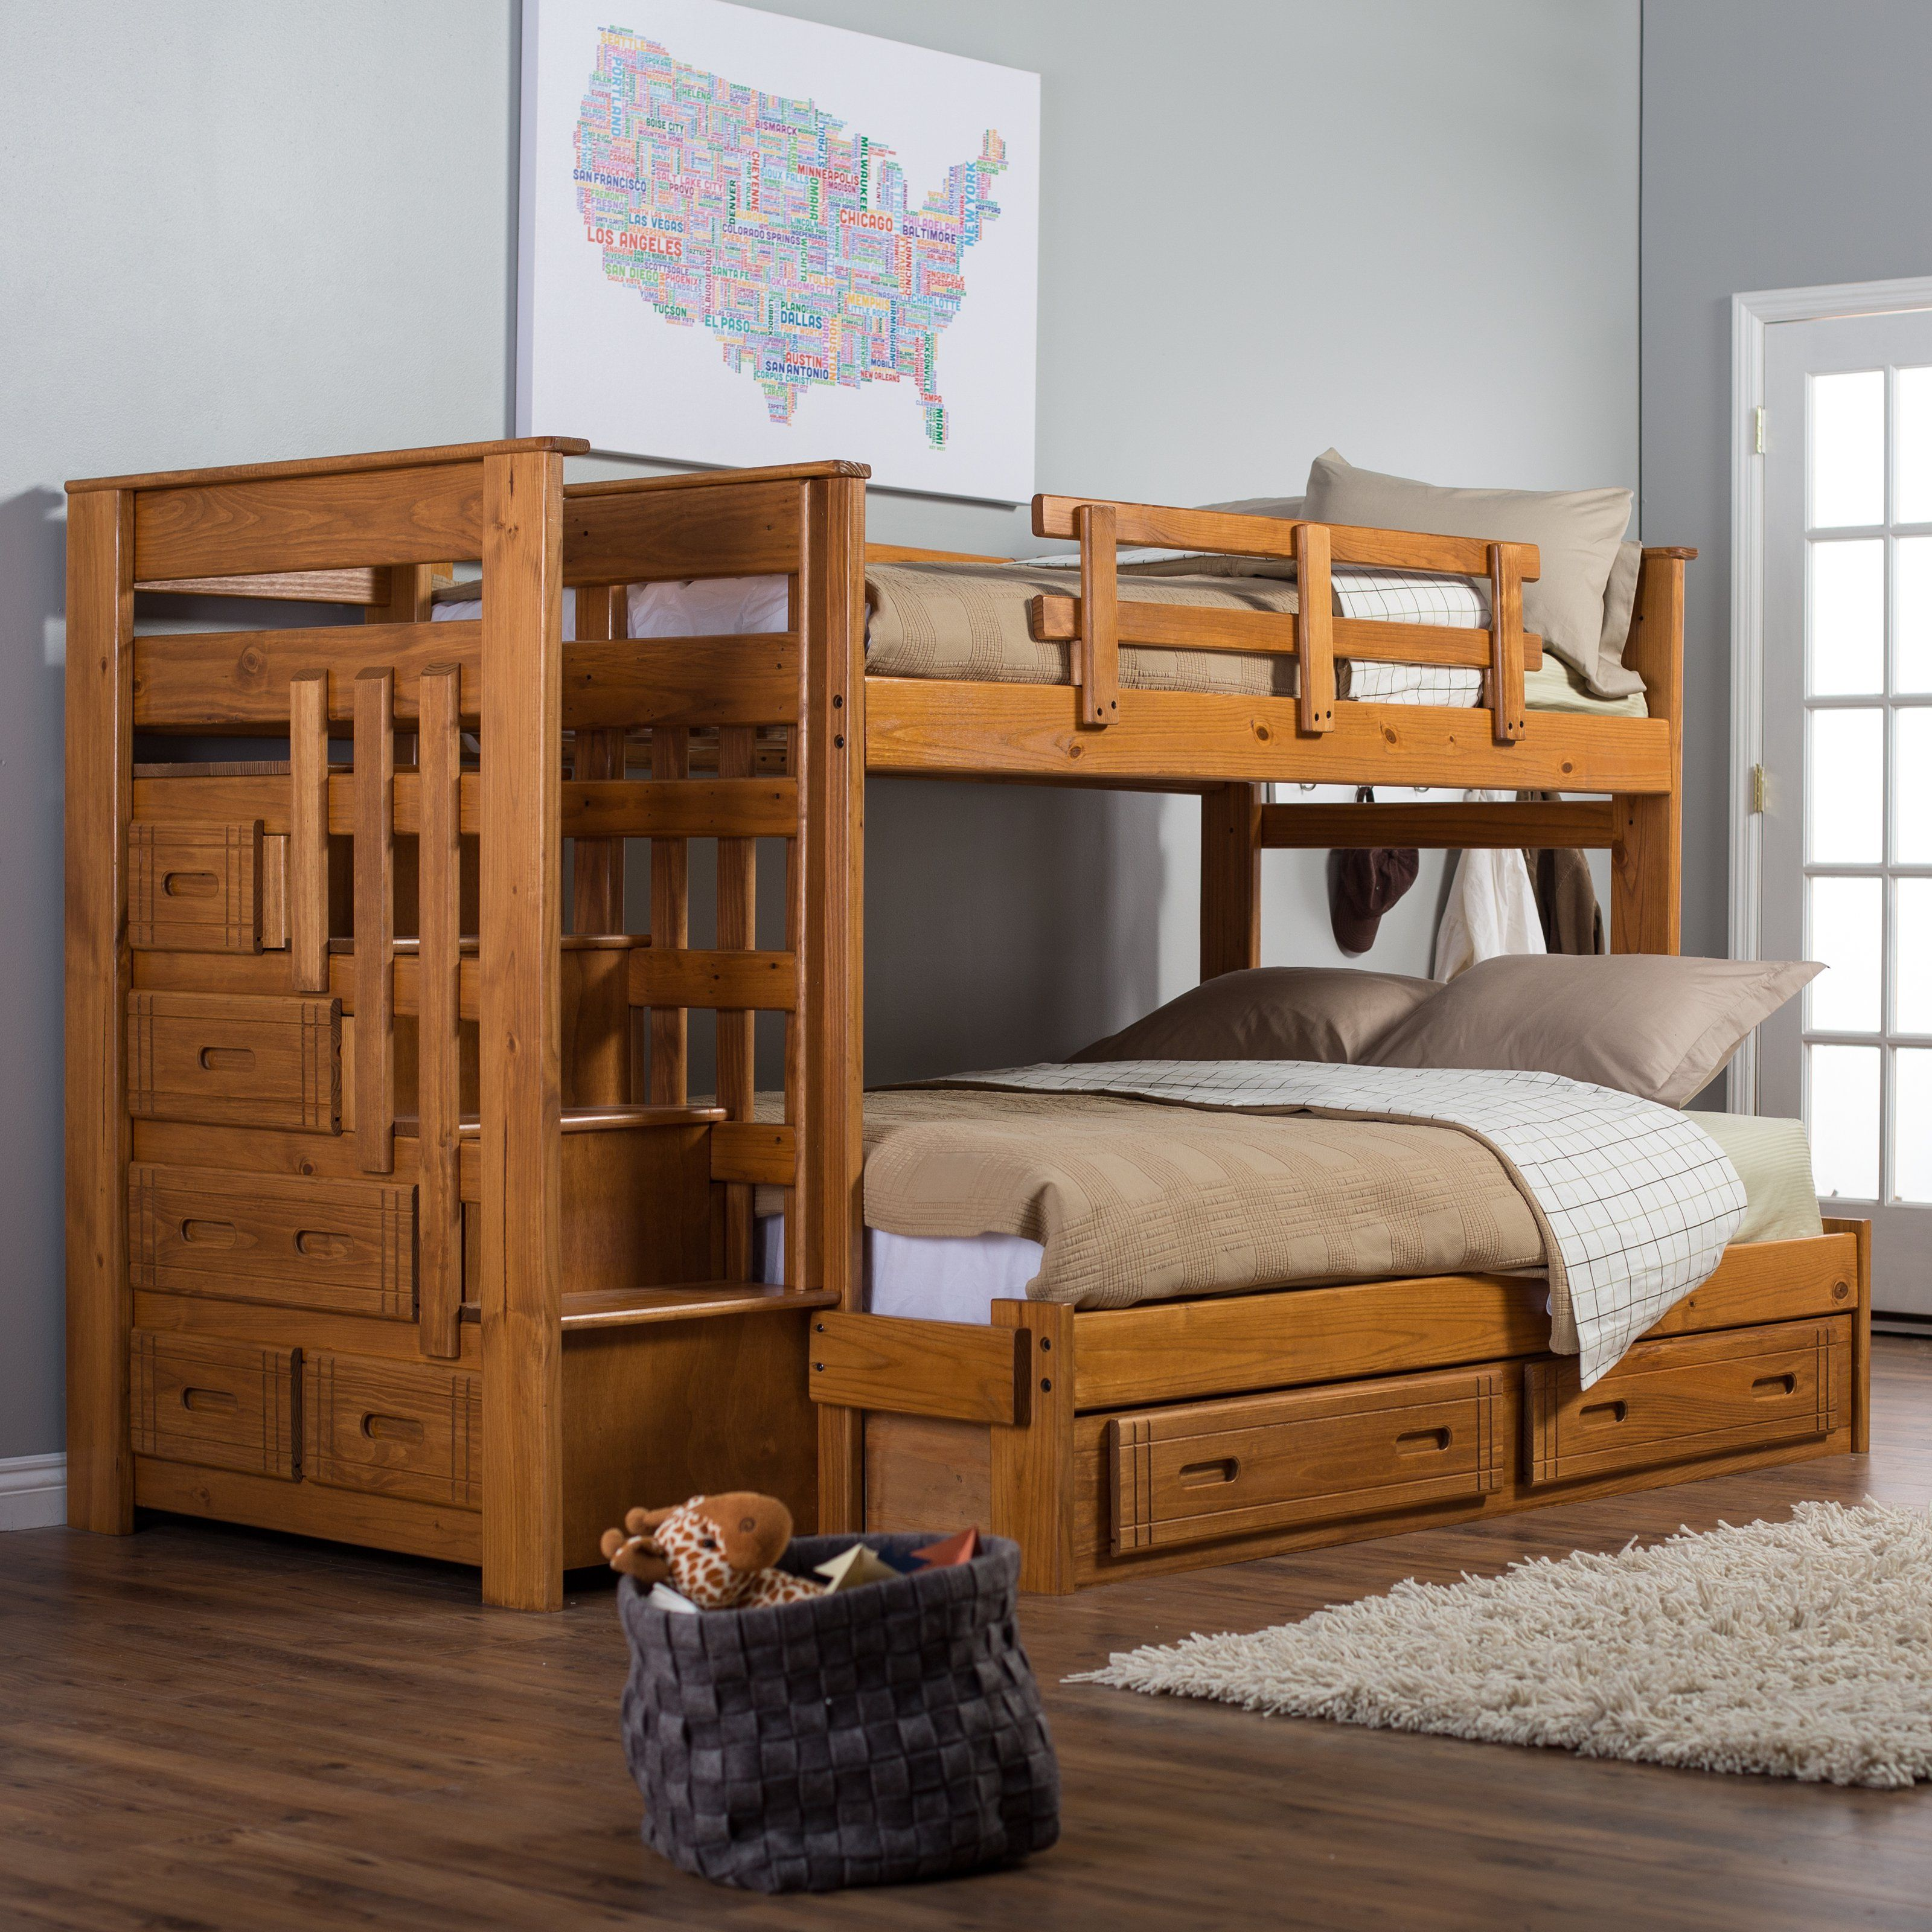 Stairway II Twin over Full Bunk Bed with Stairs Kids Storage Beds